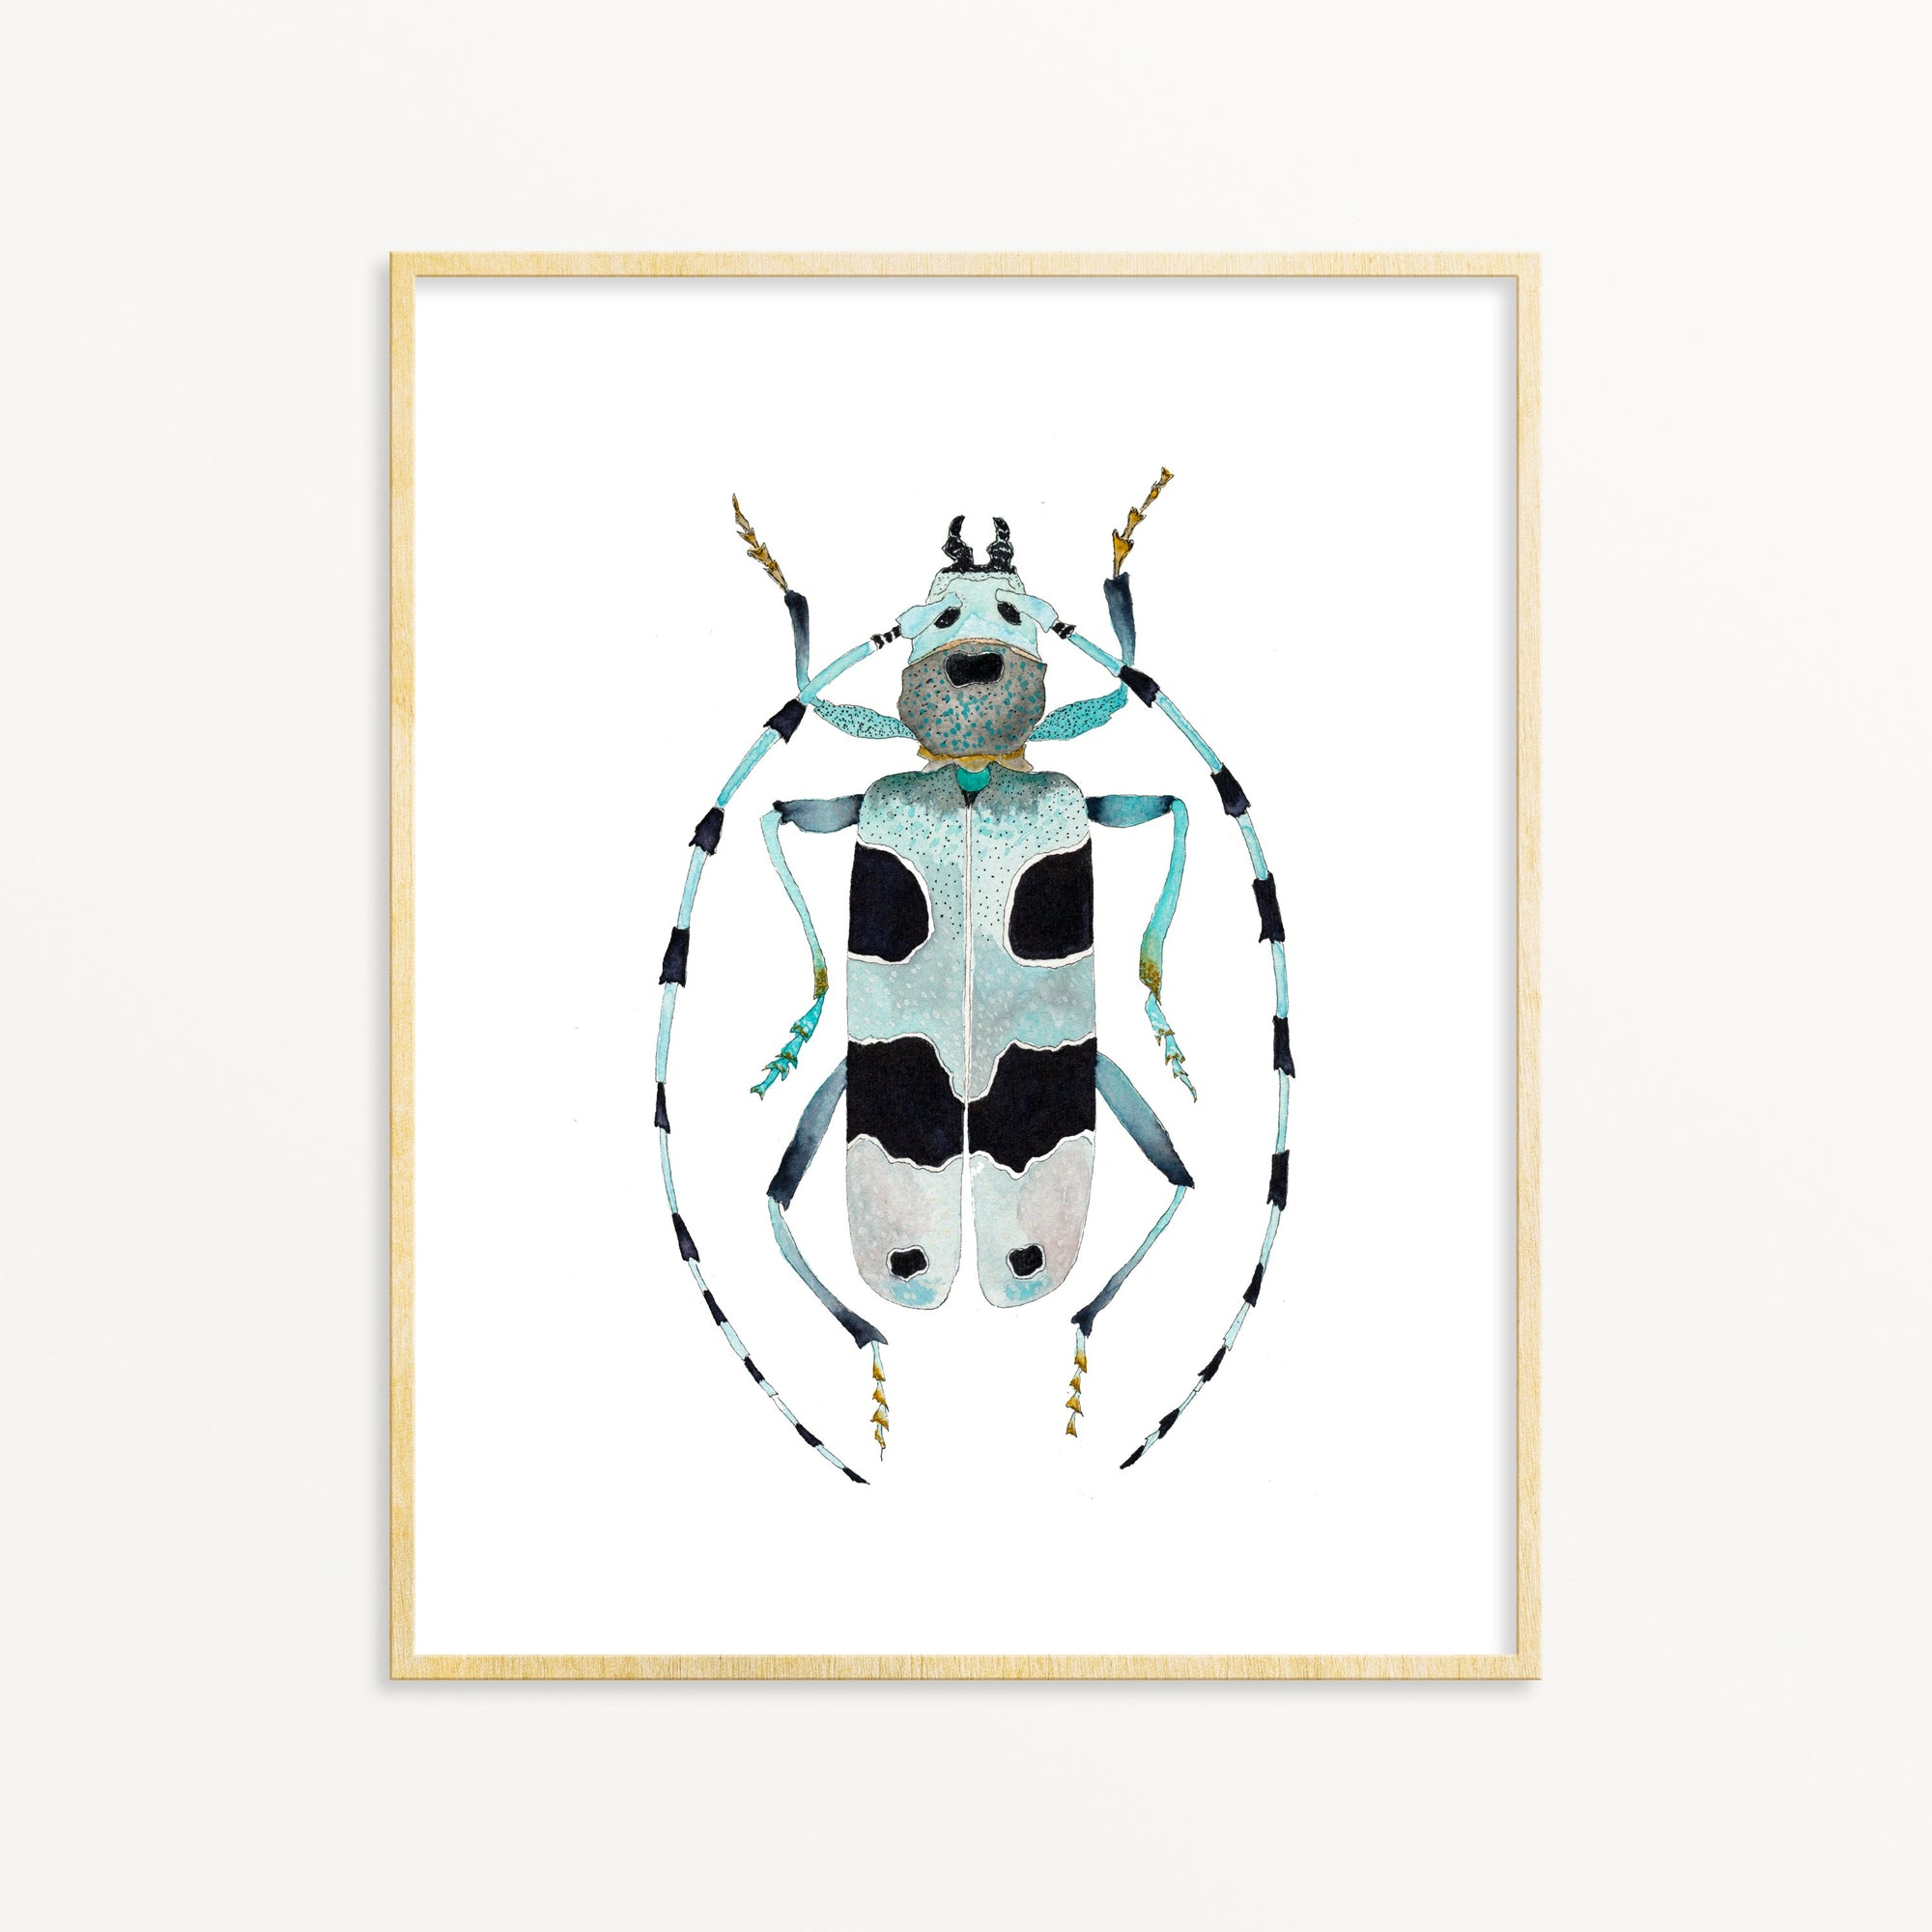 Beetle No. 5